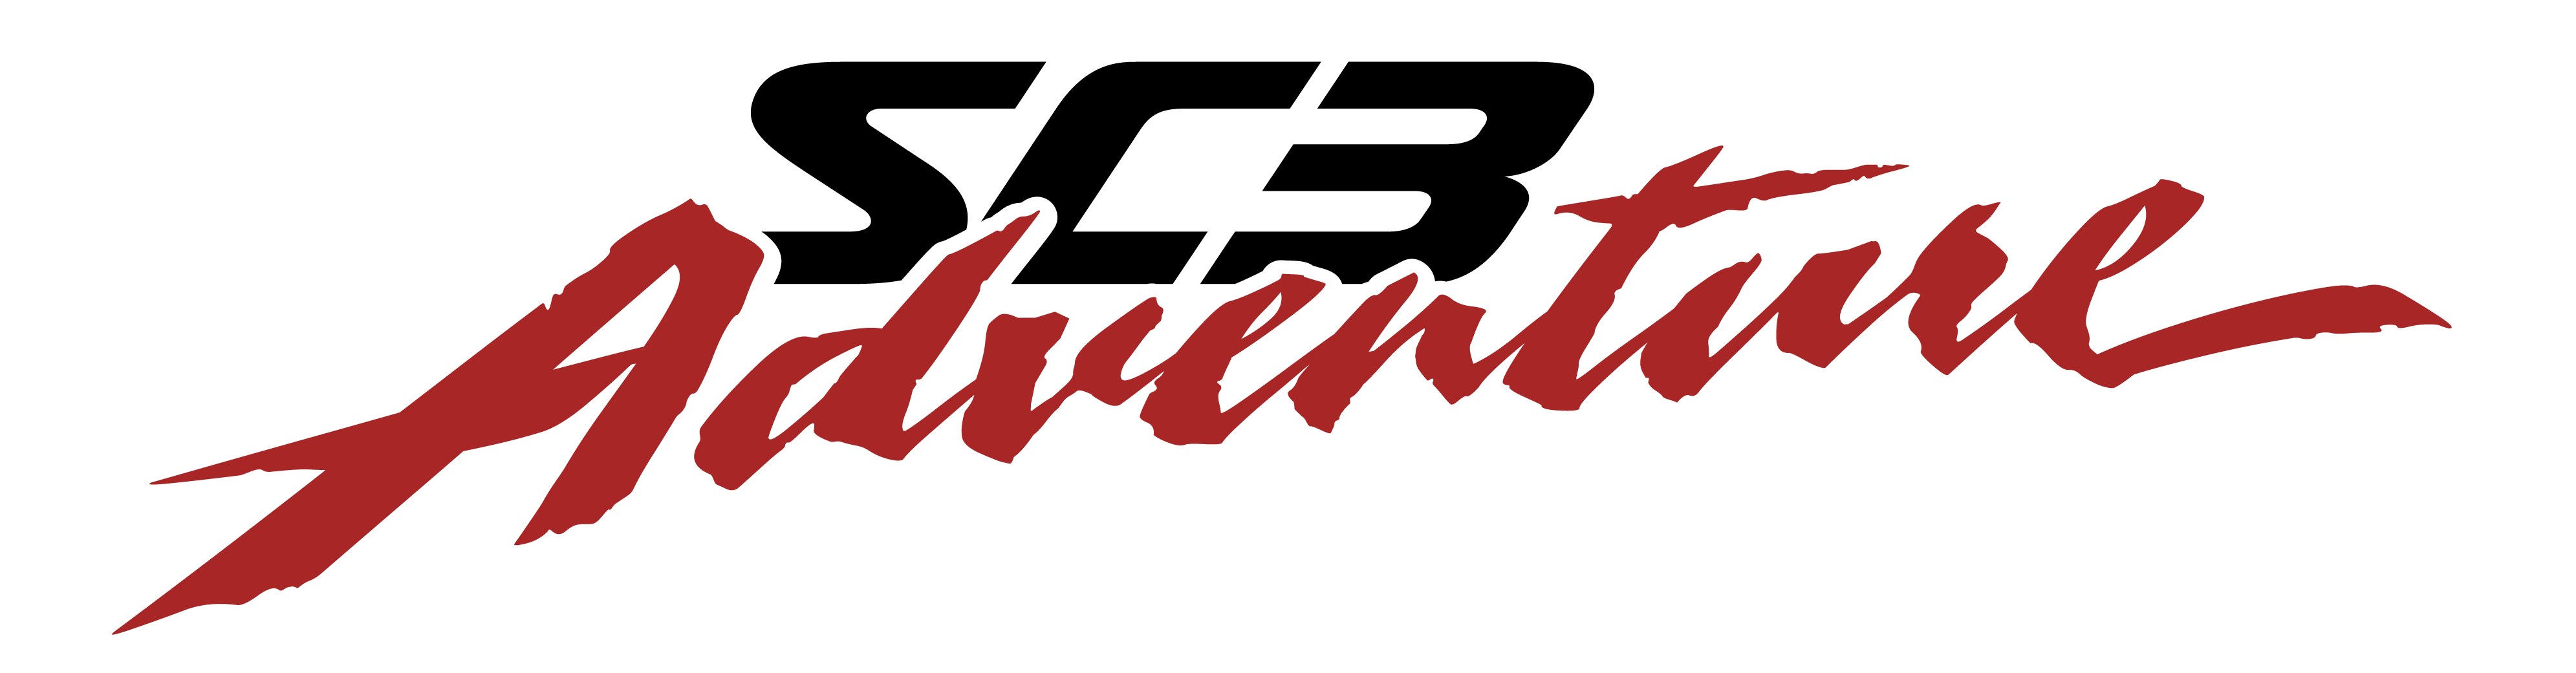 SC3 Adventure Motorcycle Model Logo